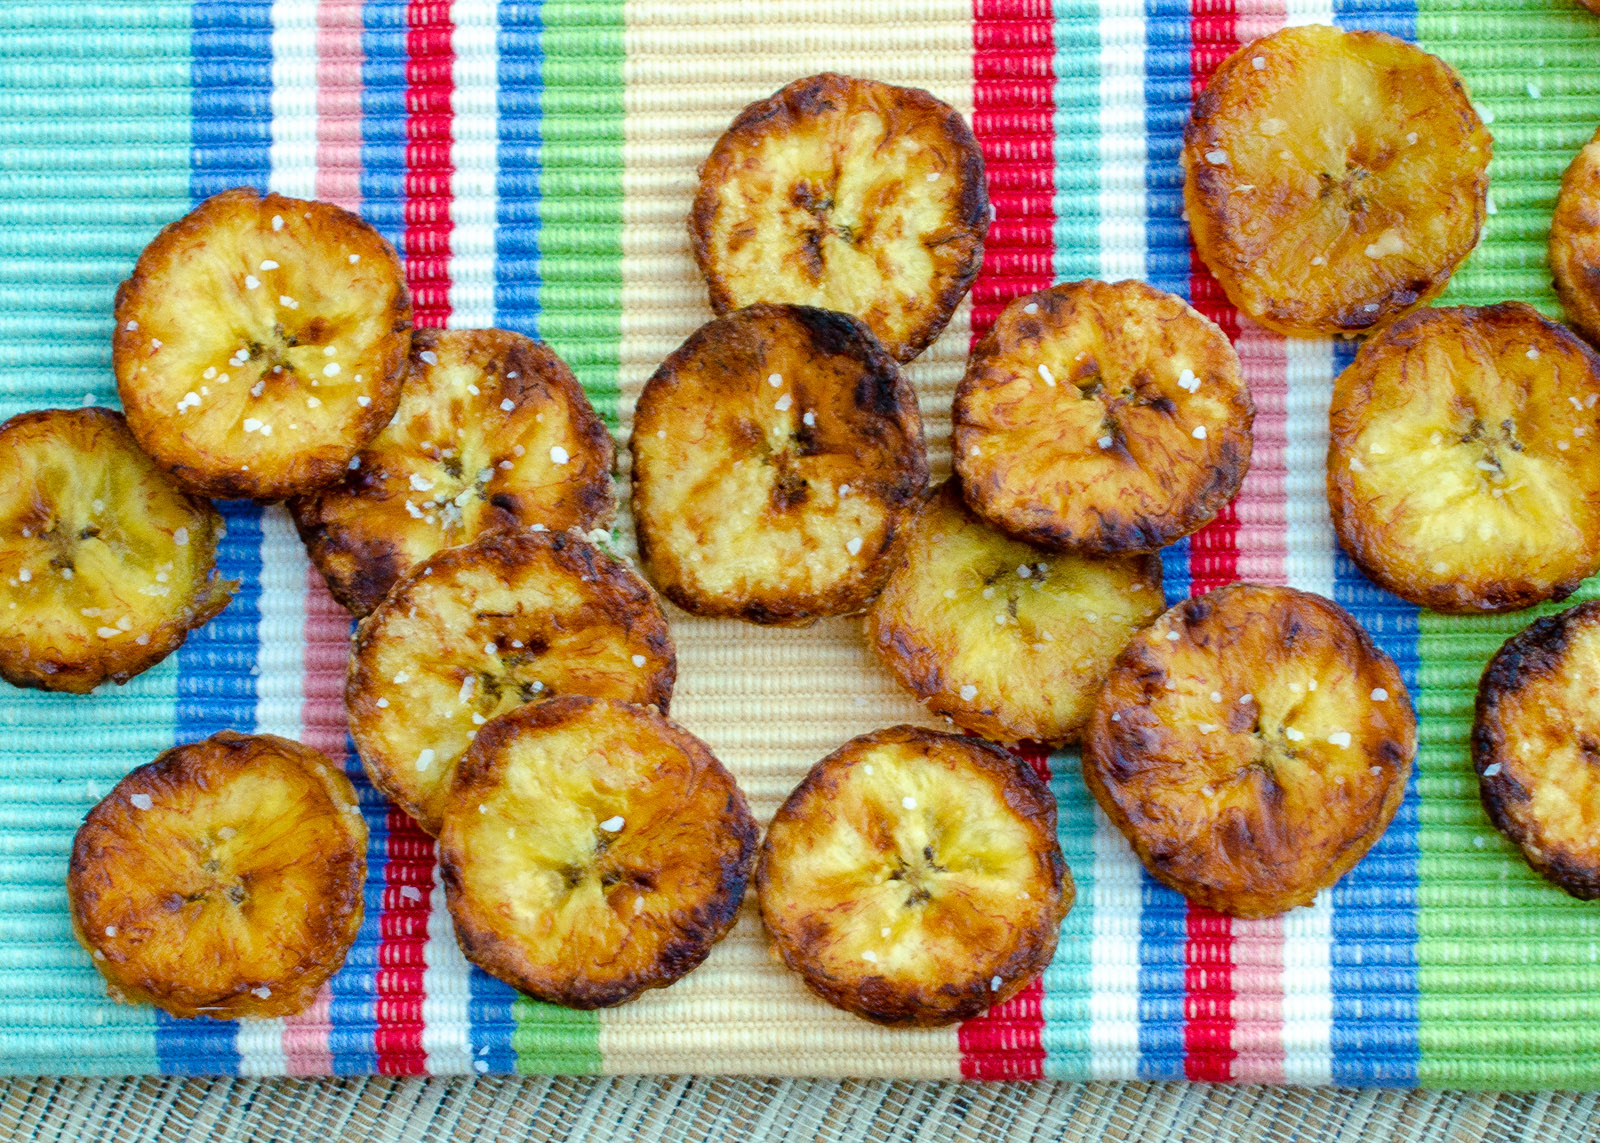 fried plantain slices on a colored background